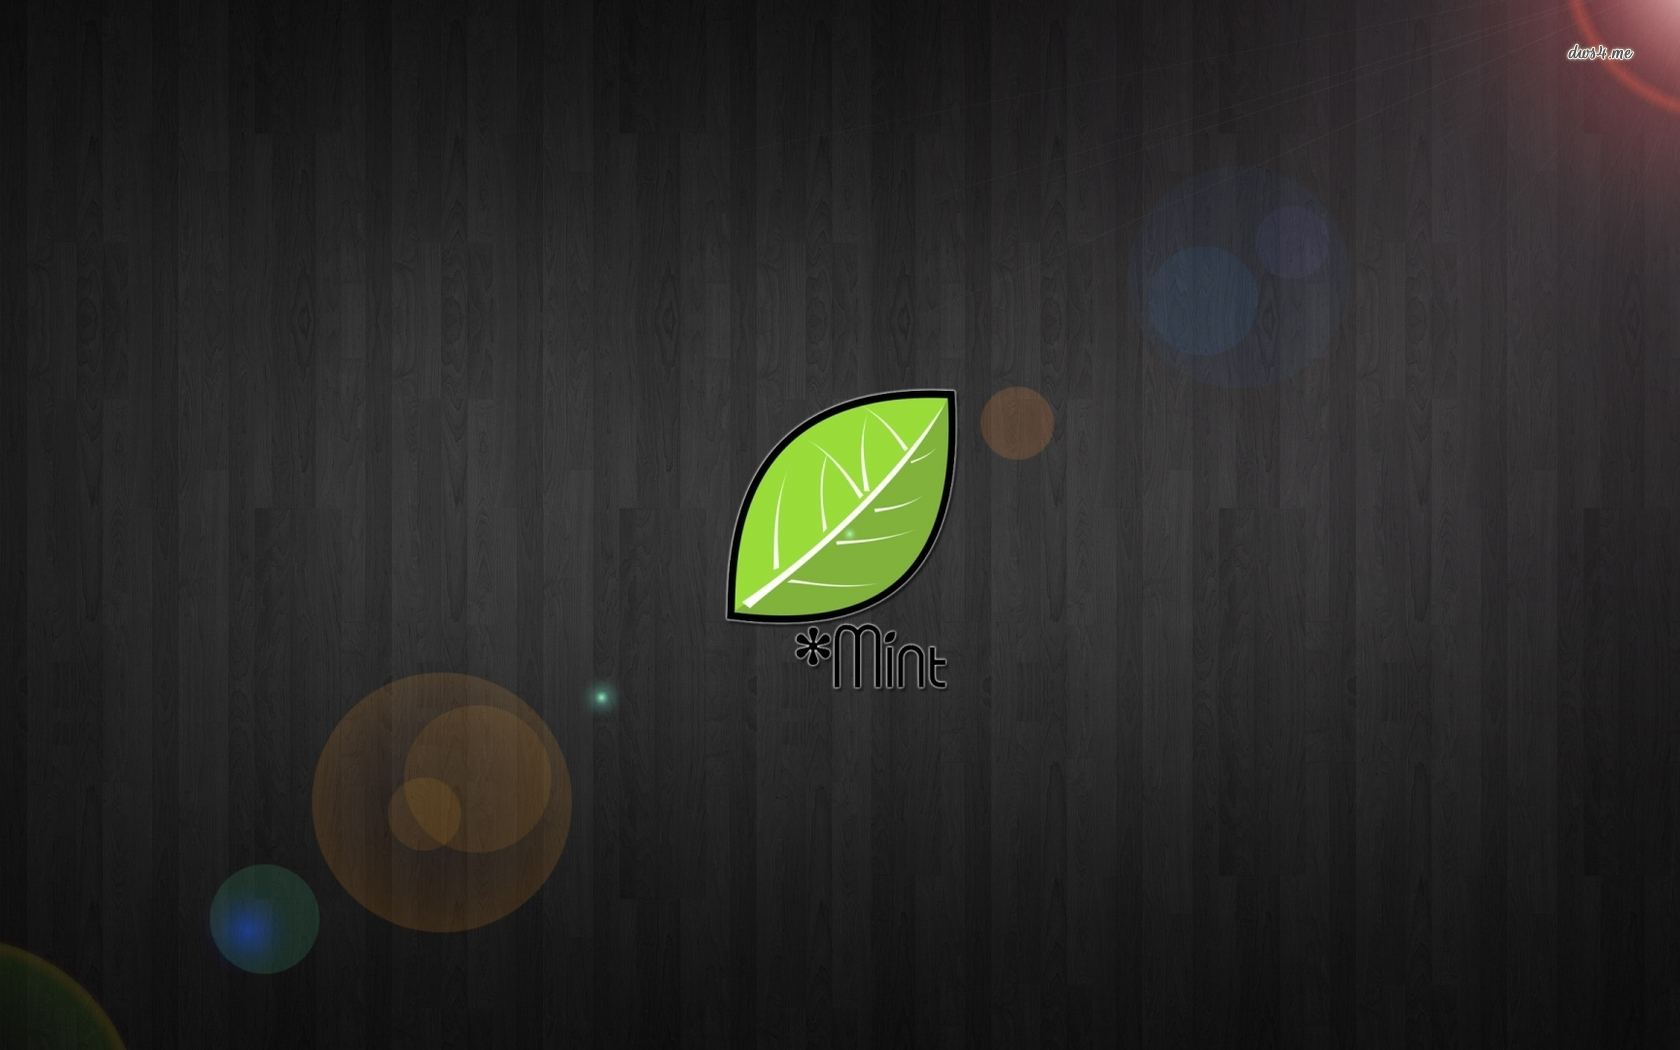 Linux Mint wallpaper 1680x1050 Linux Mint wallpaper 1920x1080 more 1680x1050